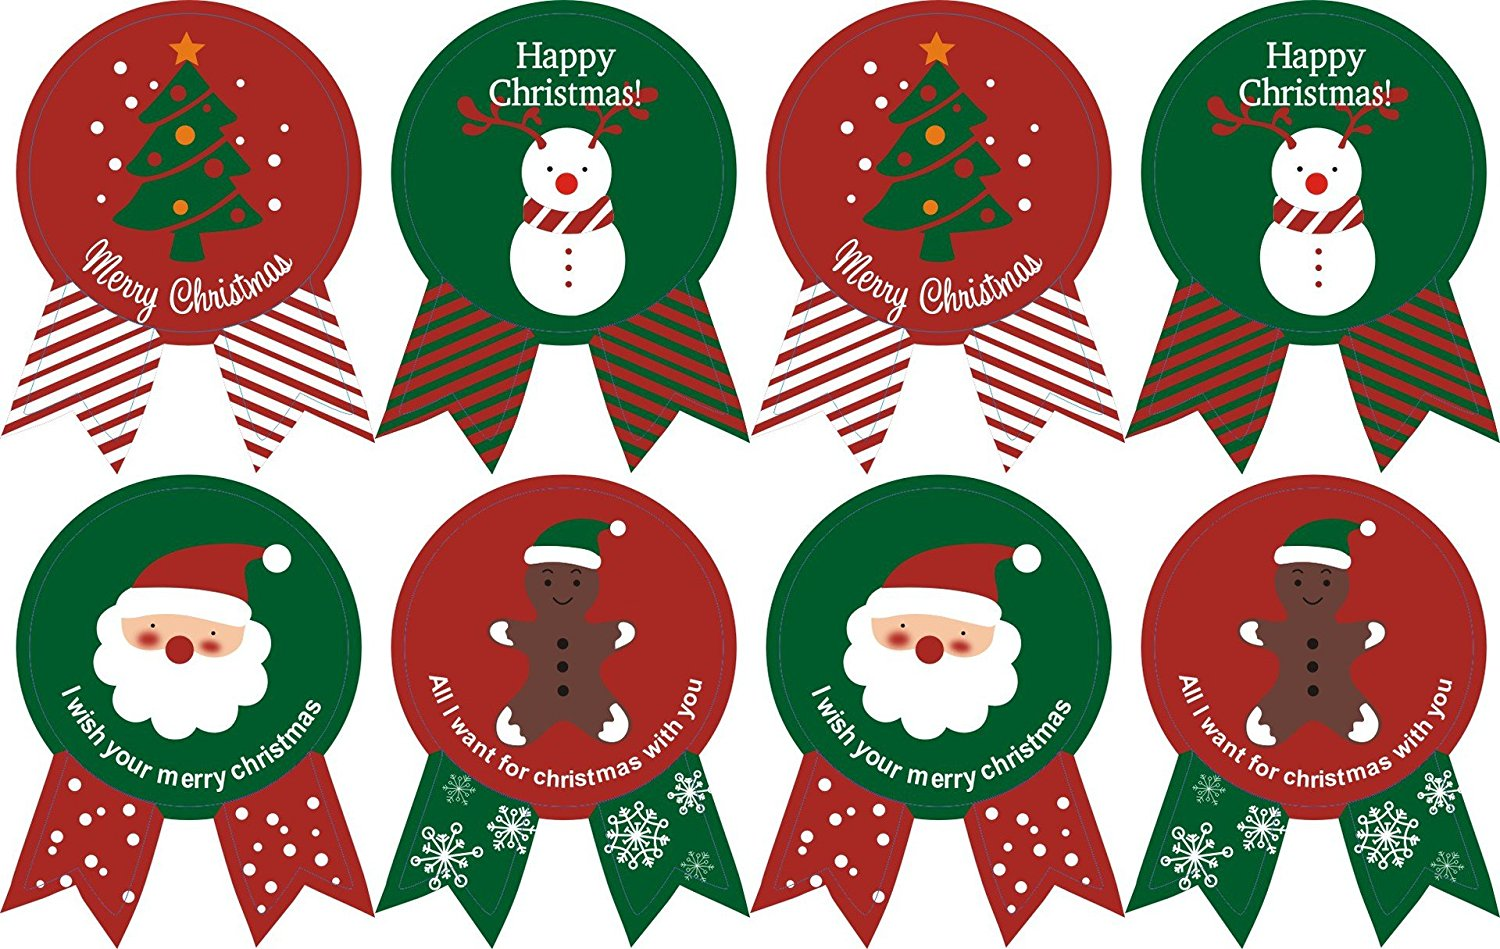 Pack of 40 Christmas style Decorative Adhesive Label Personalized Stickers Packaging Seals Crafts Handmade Baked Envelope Label Decorative Sticker (Christmas sticker 25mmx35mm 40pcs)